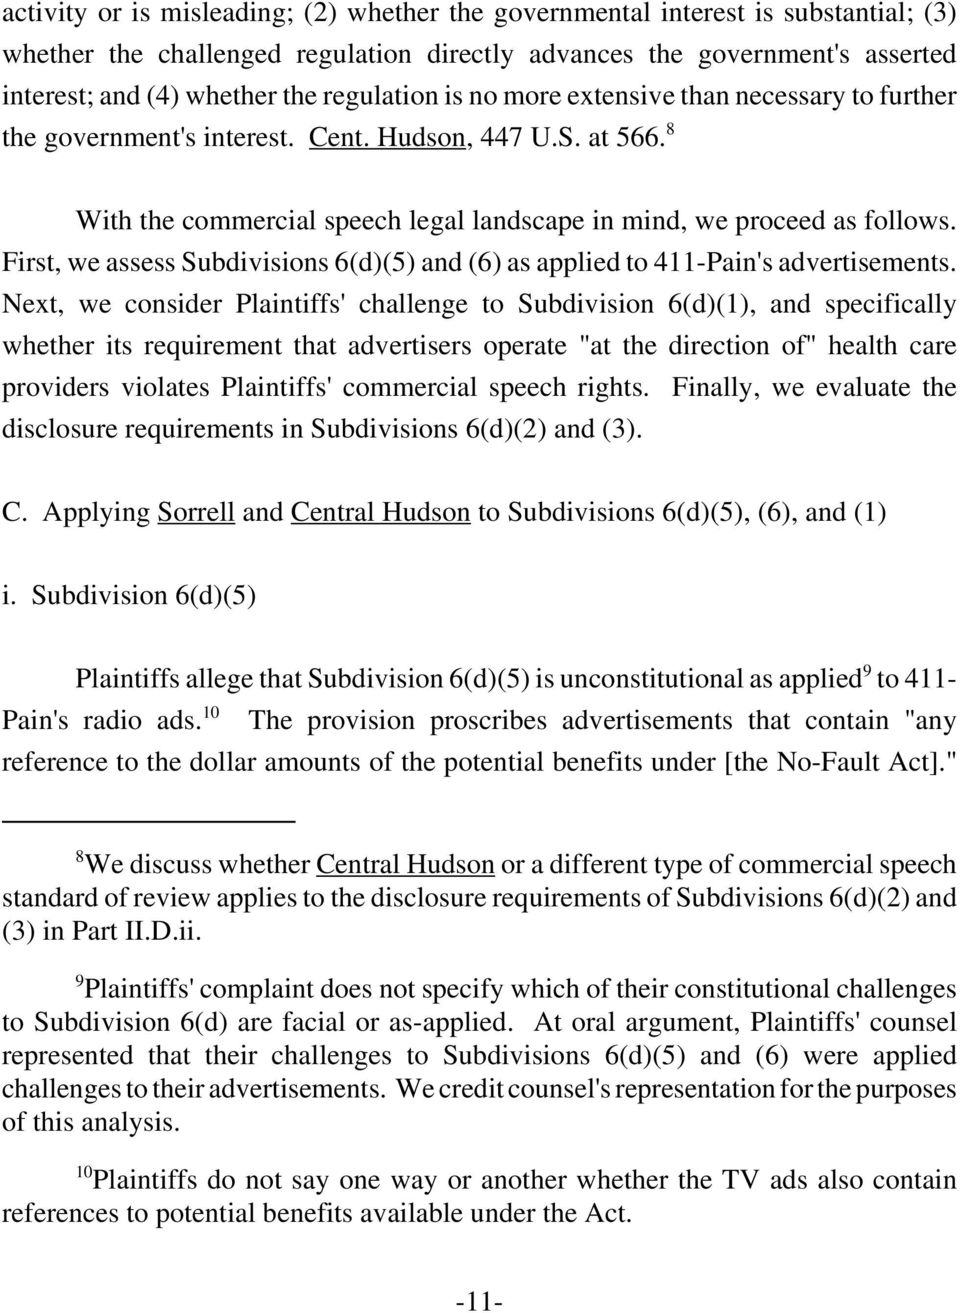 First, we assess Subdivisions 6(d)(5) and (6) as applied to 411-Pain's advertisements.